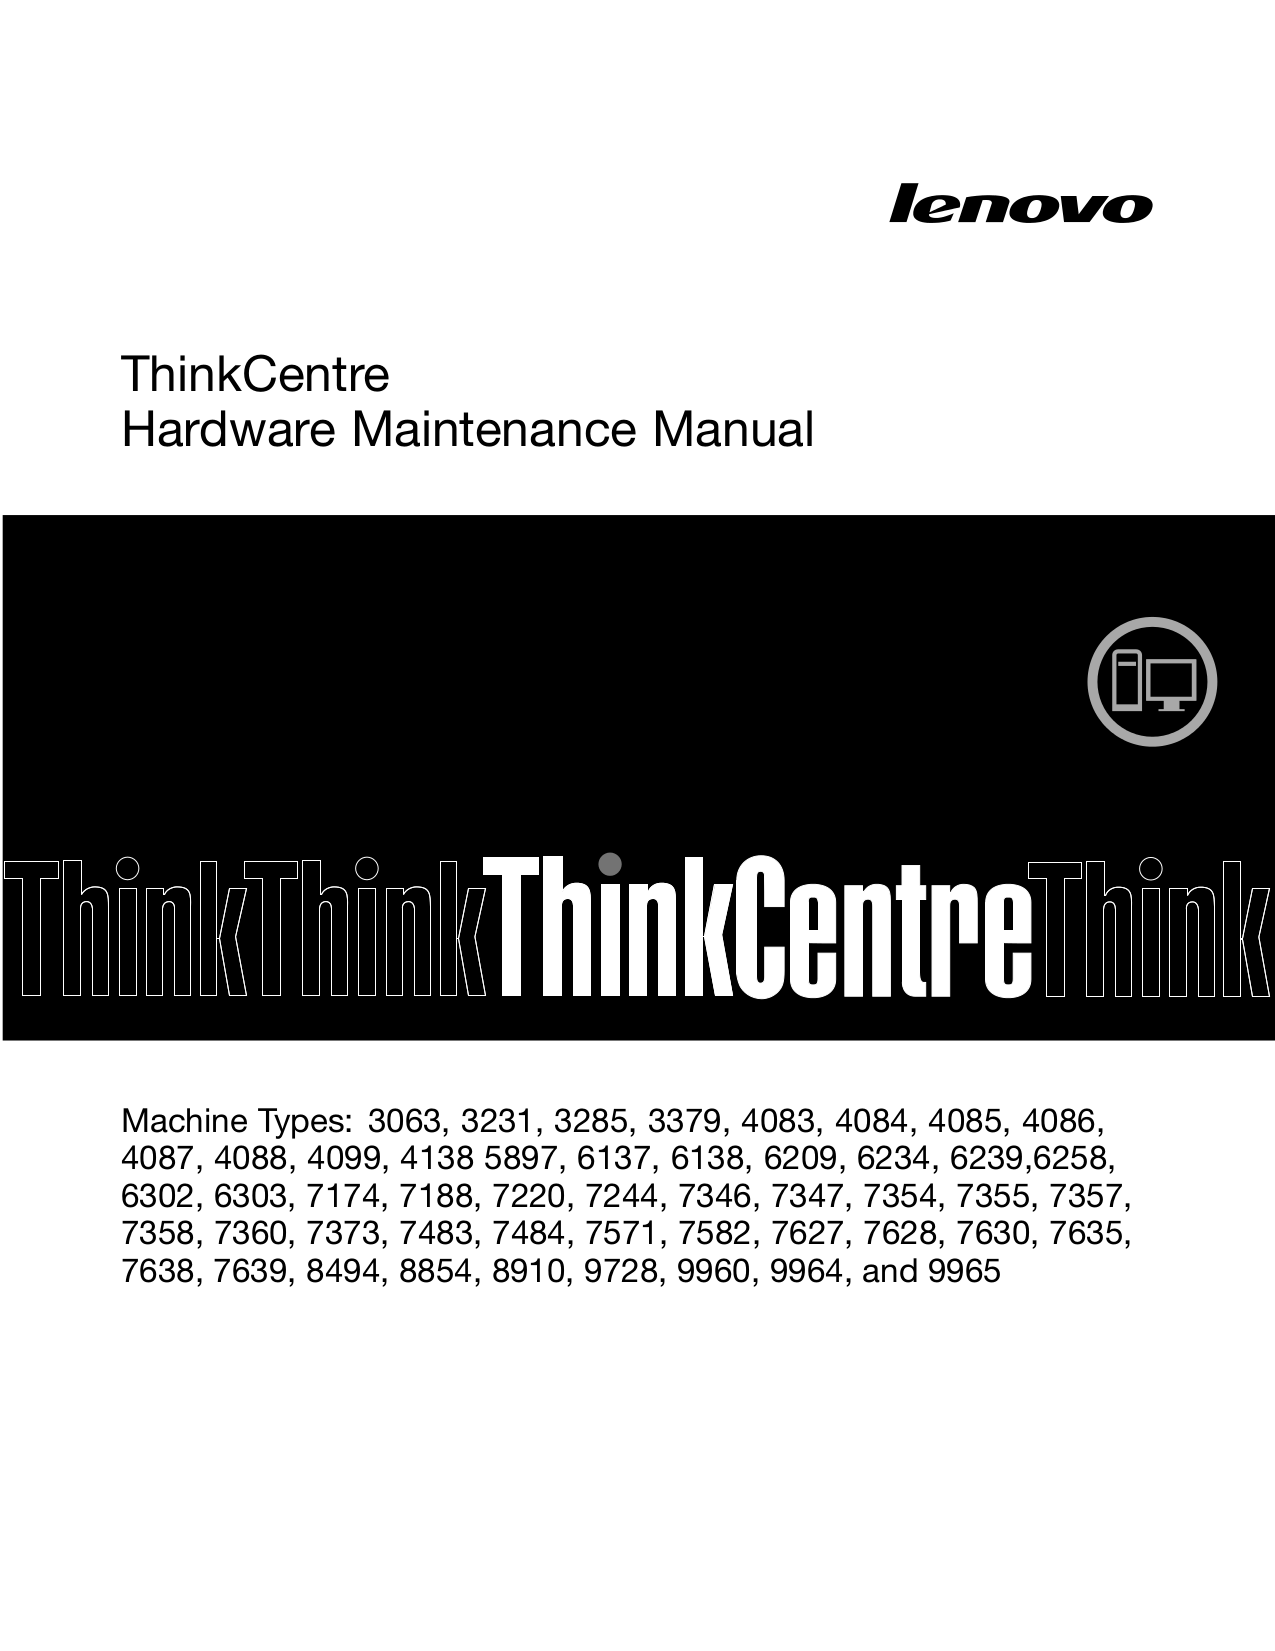 pdf for Lenovo Desktop ThinkCentre M58 7628 manual